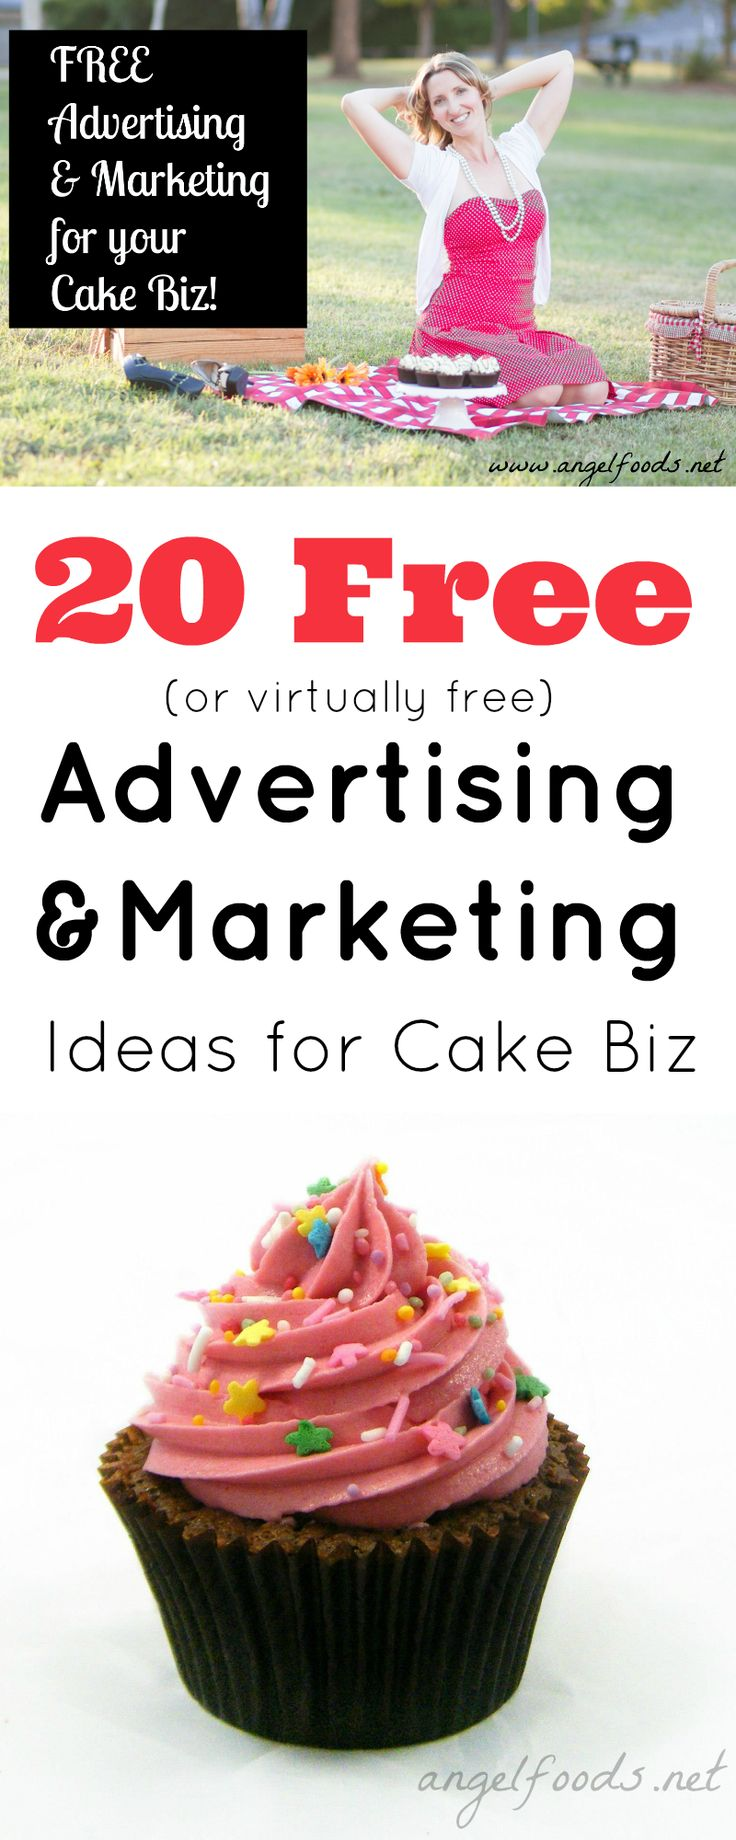 20 Free Advertising & Marketing Ideas for a Cake Business | Free Advertising and Marketing, How to Get More Bang For Less Buck! You want to advertise but don't know where and are on a budget. I have 20 free ideas for ... | http://angelfoods.net/free-adver https://www.facebook.com/XtremeFreelance/